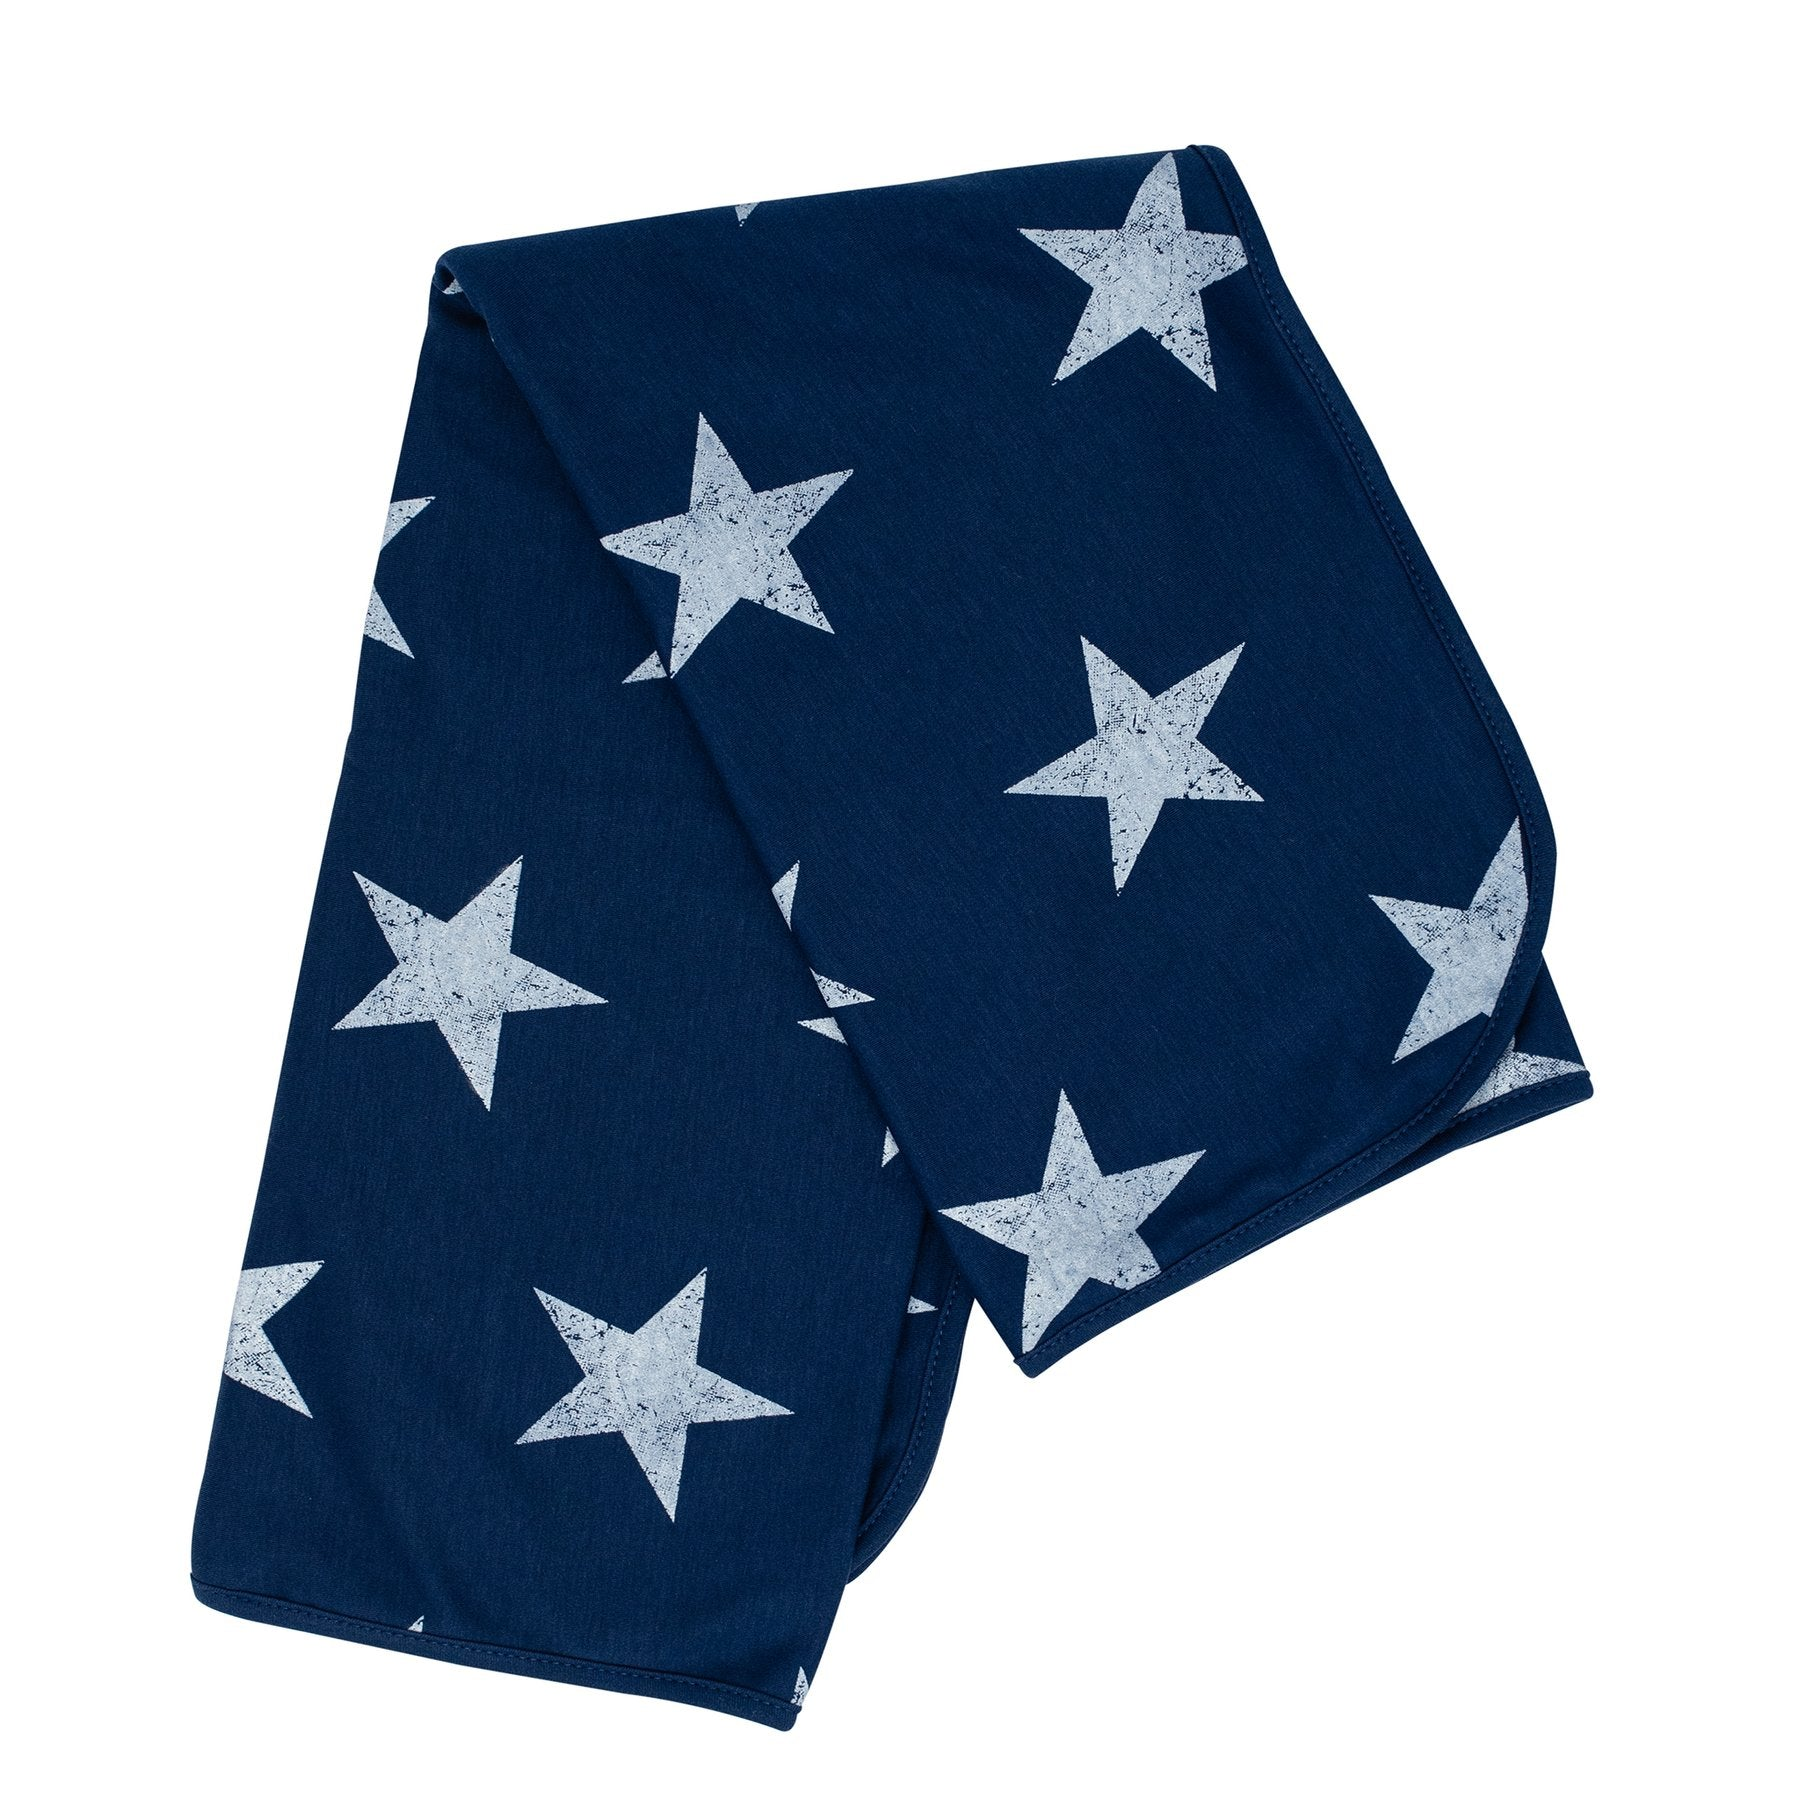 White Star Blanket - Navy